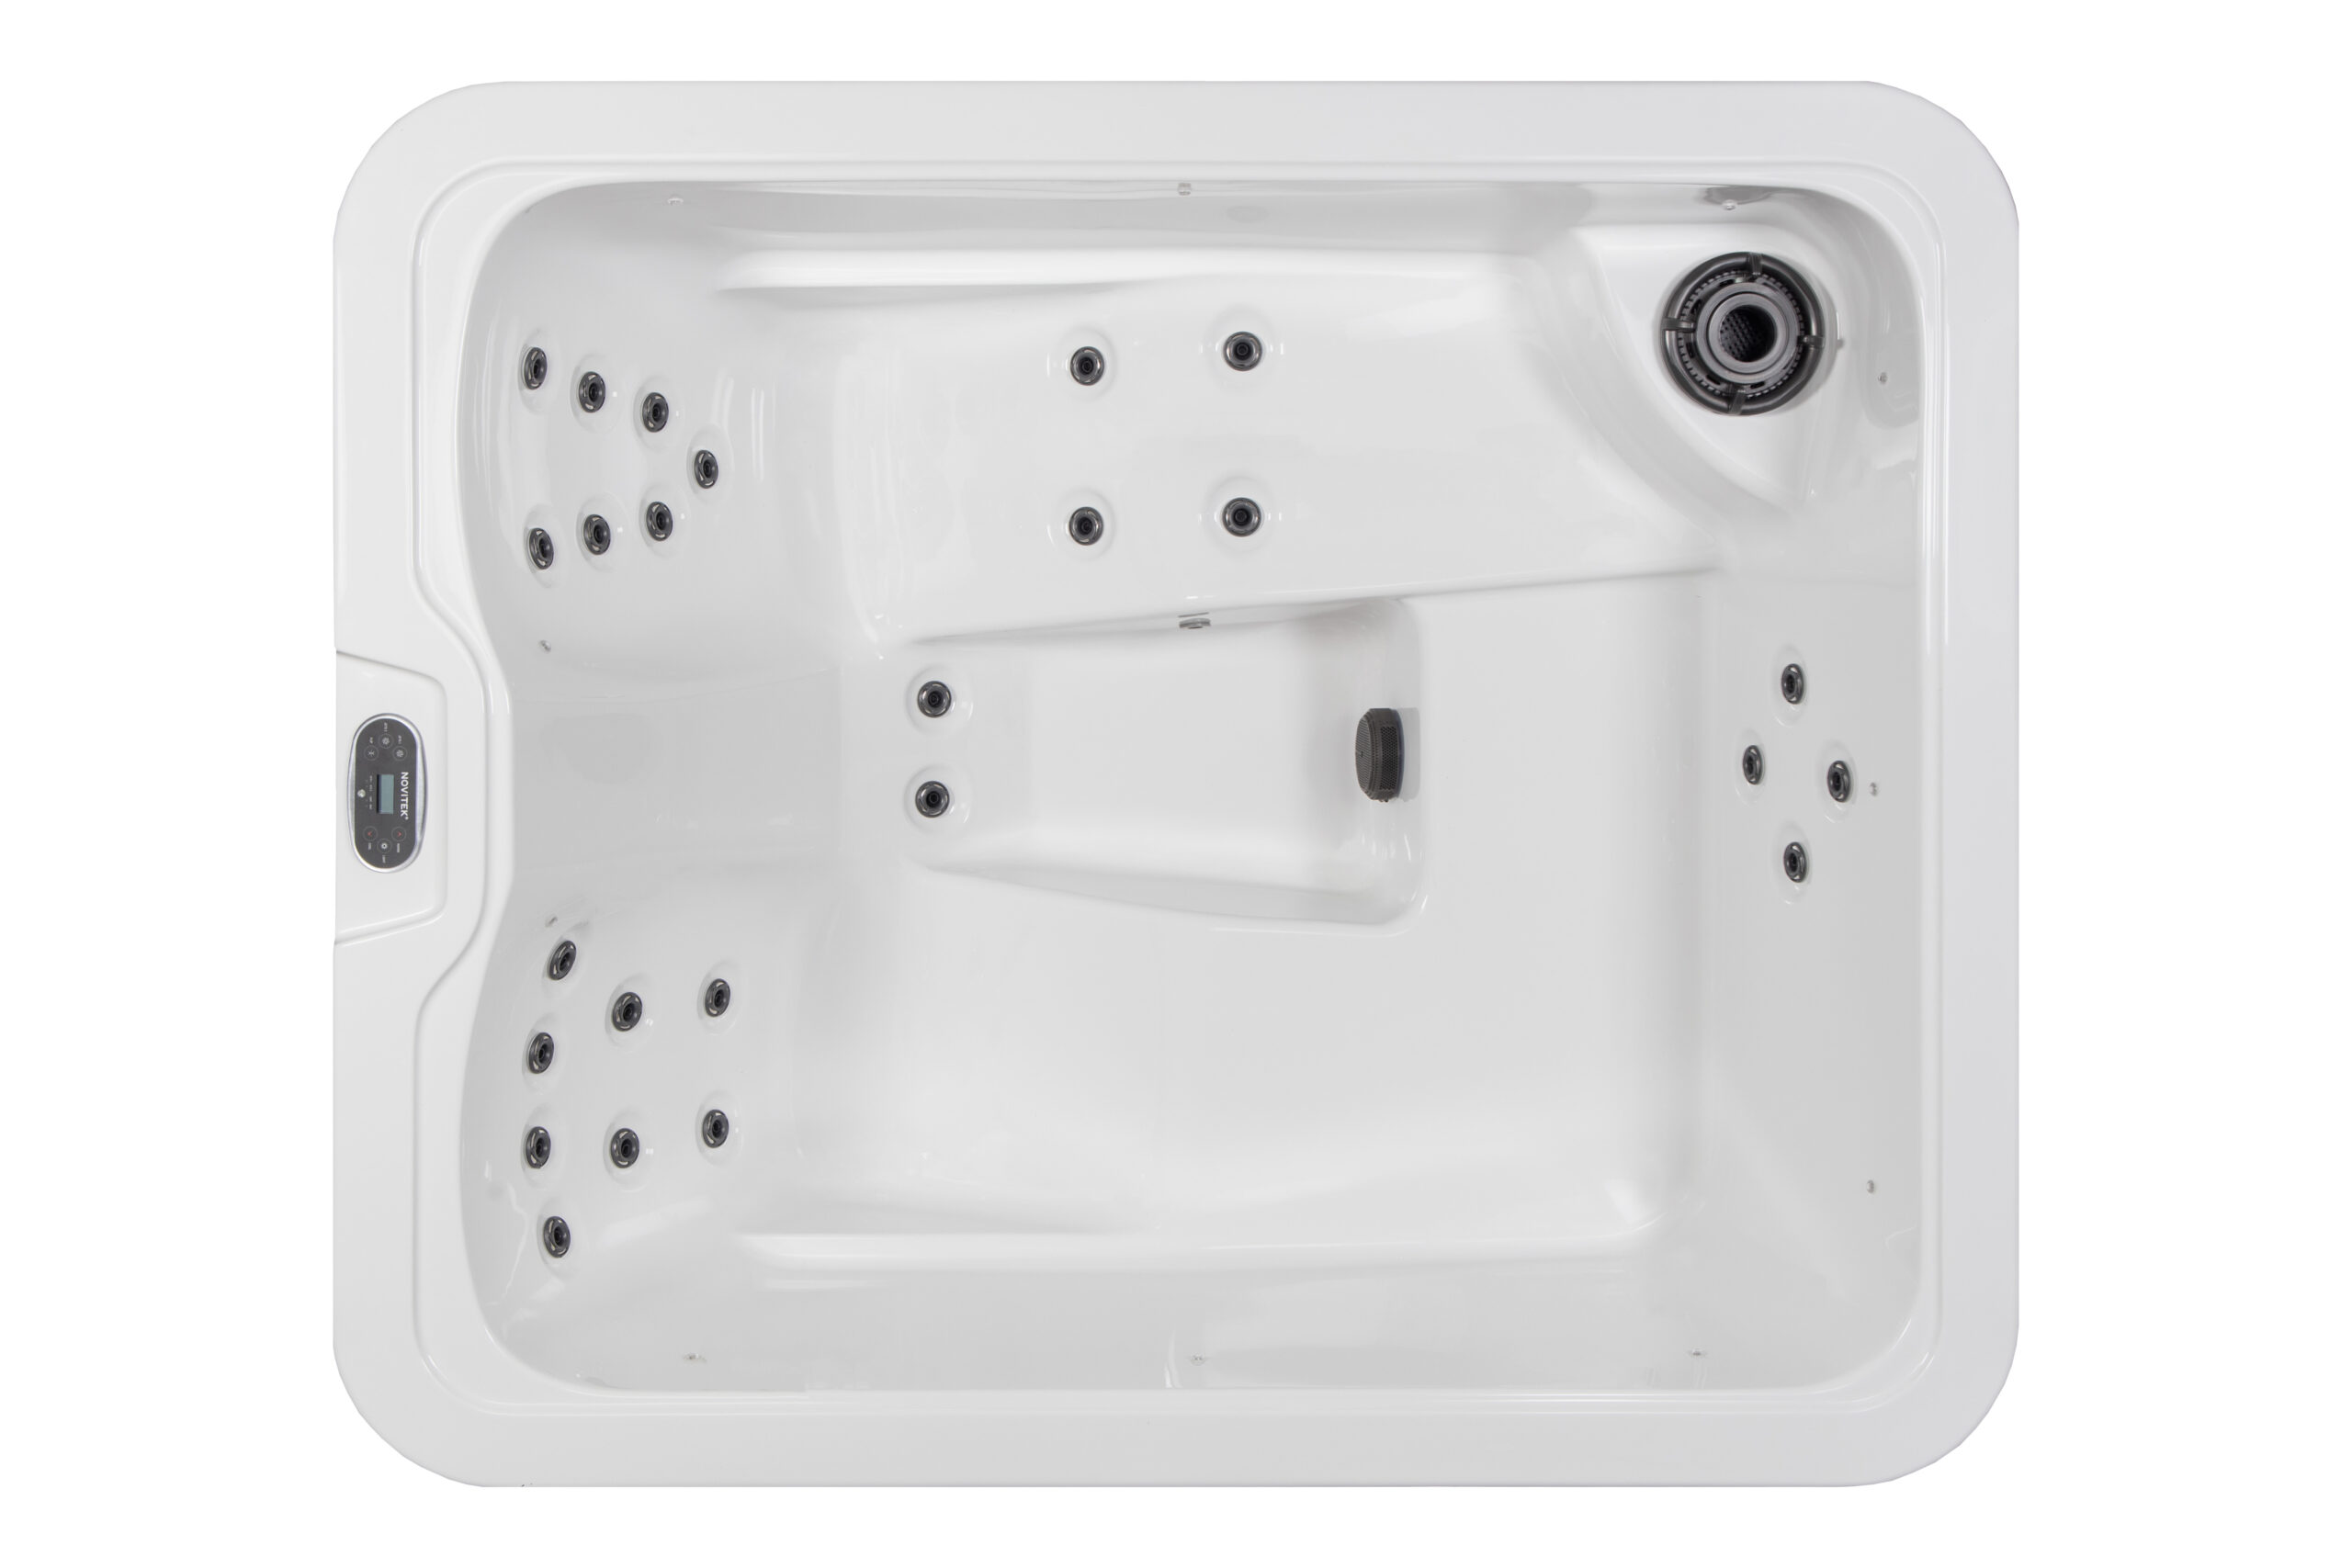 Novitek Ropi hot tub